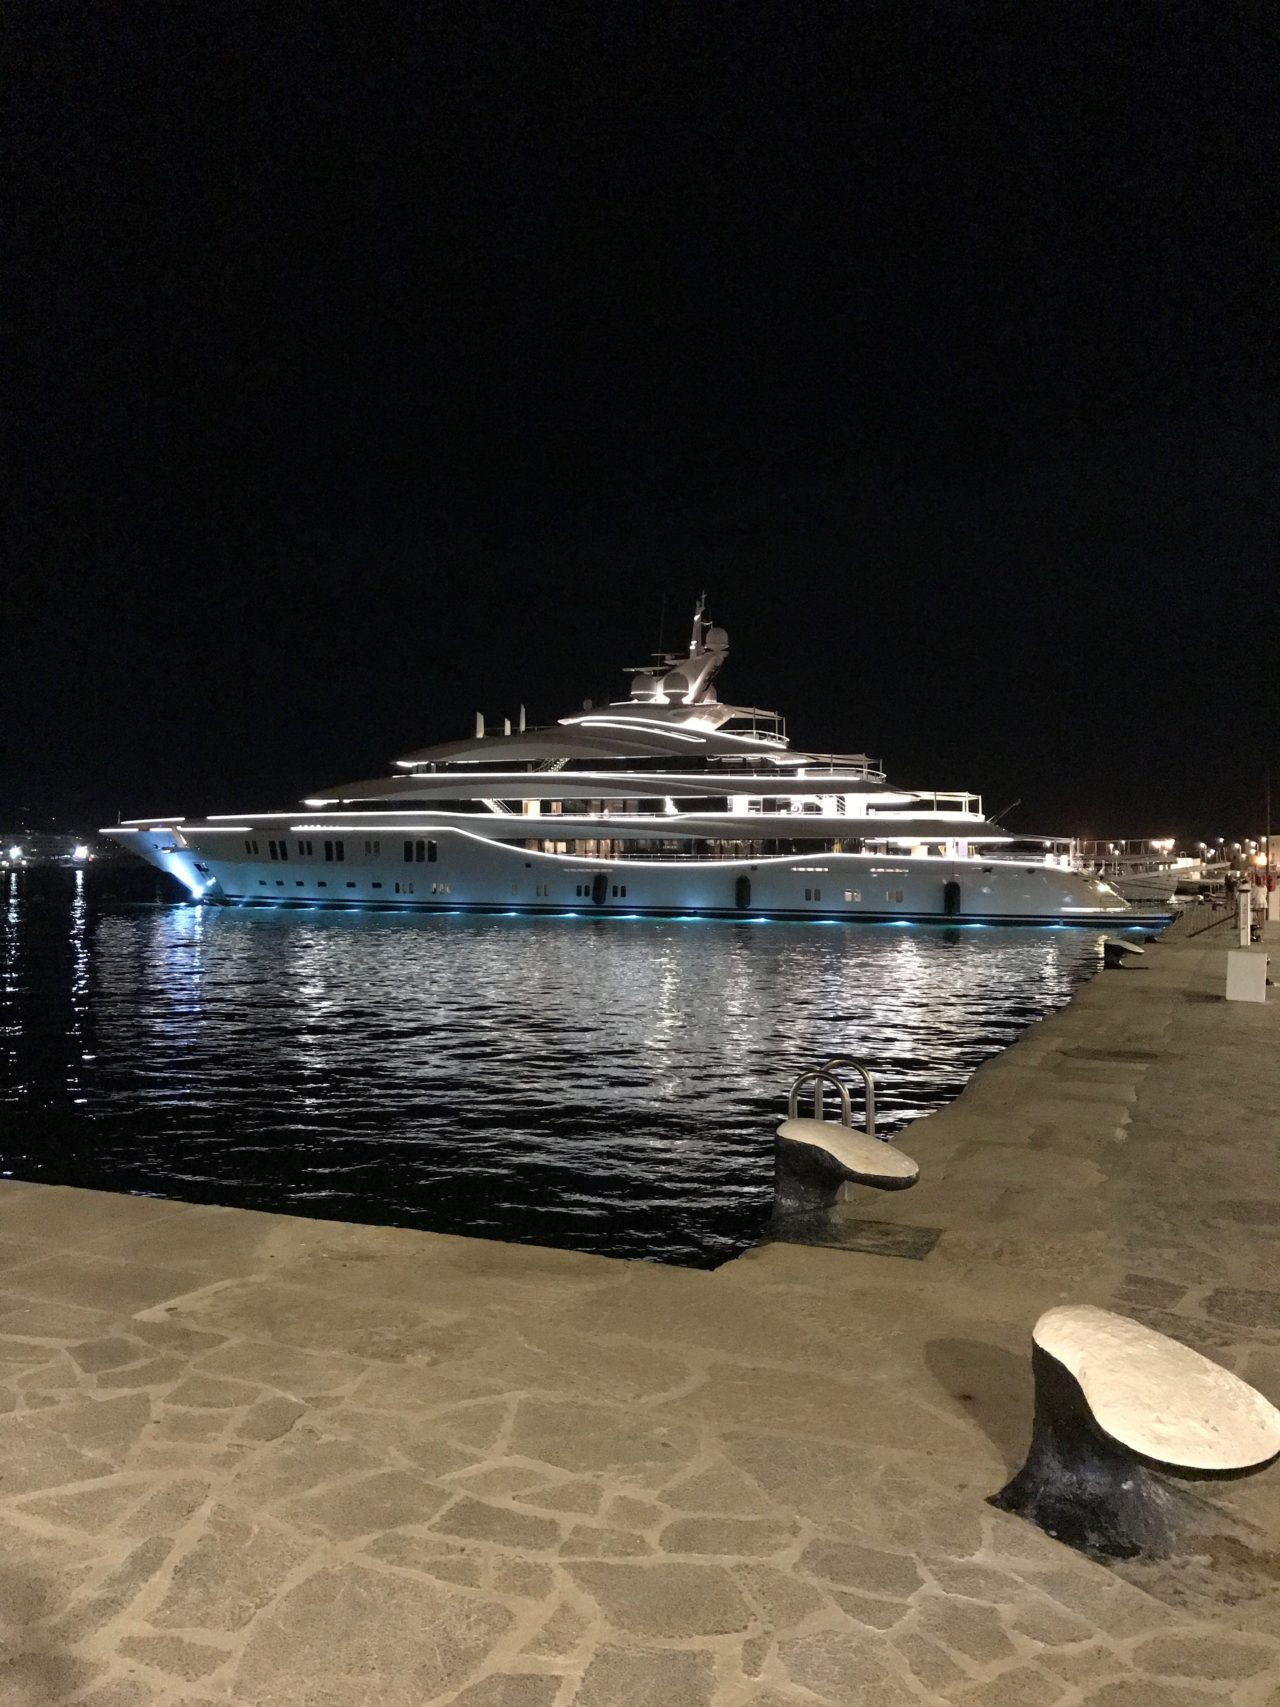 Luxury Yacht With Water Line Lights Docked In City